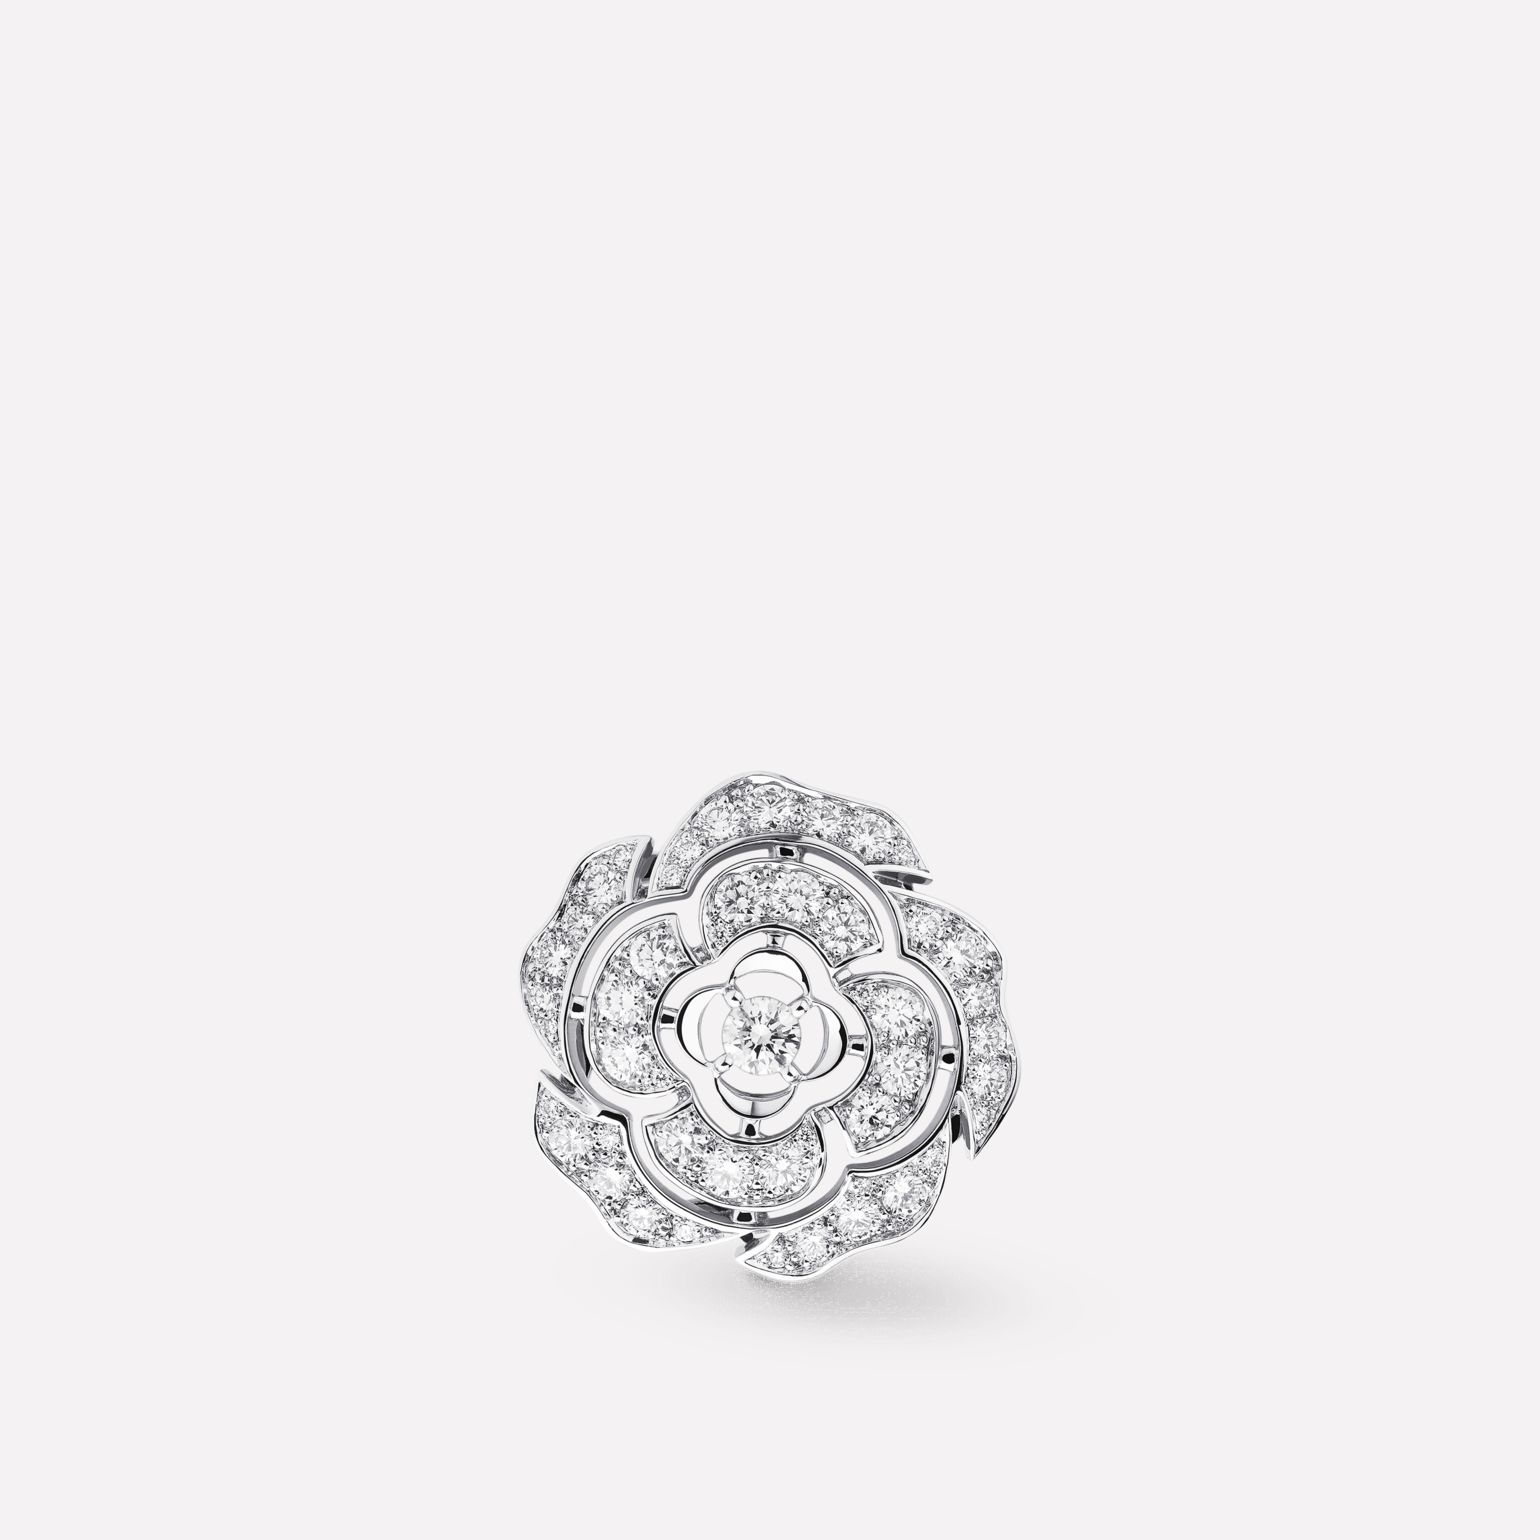 Bouton de Camélia brooch 18K white gold, diamonds